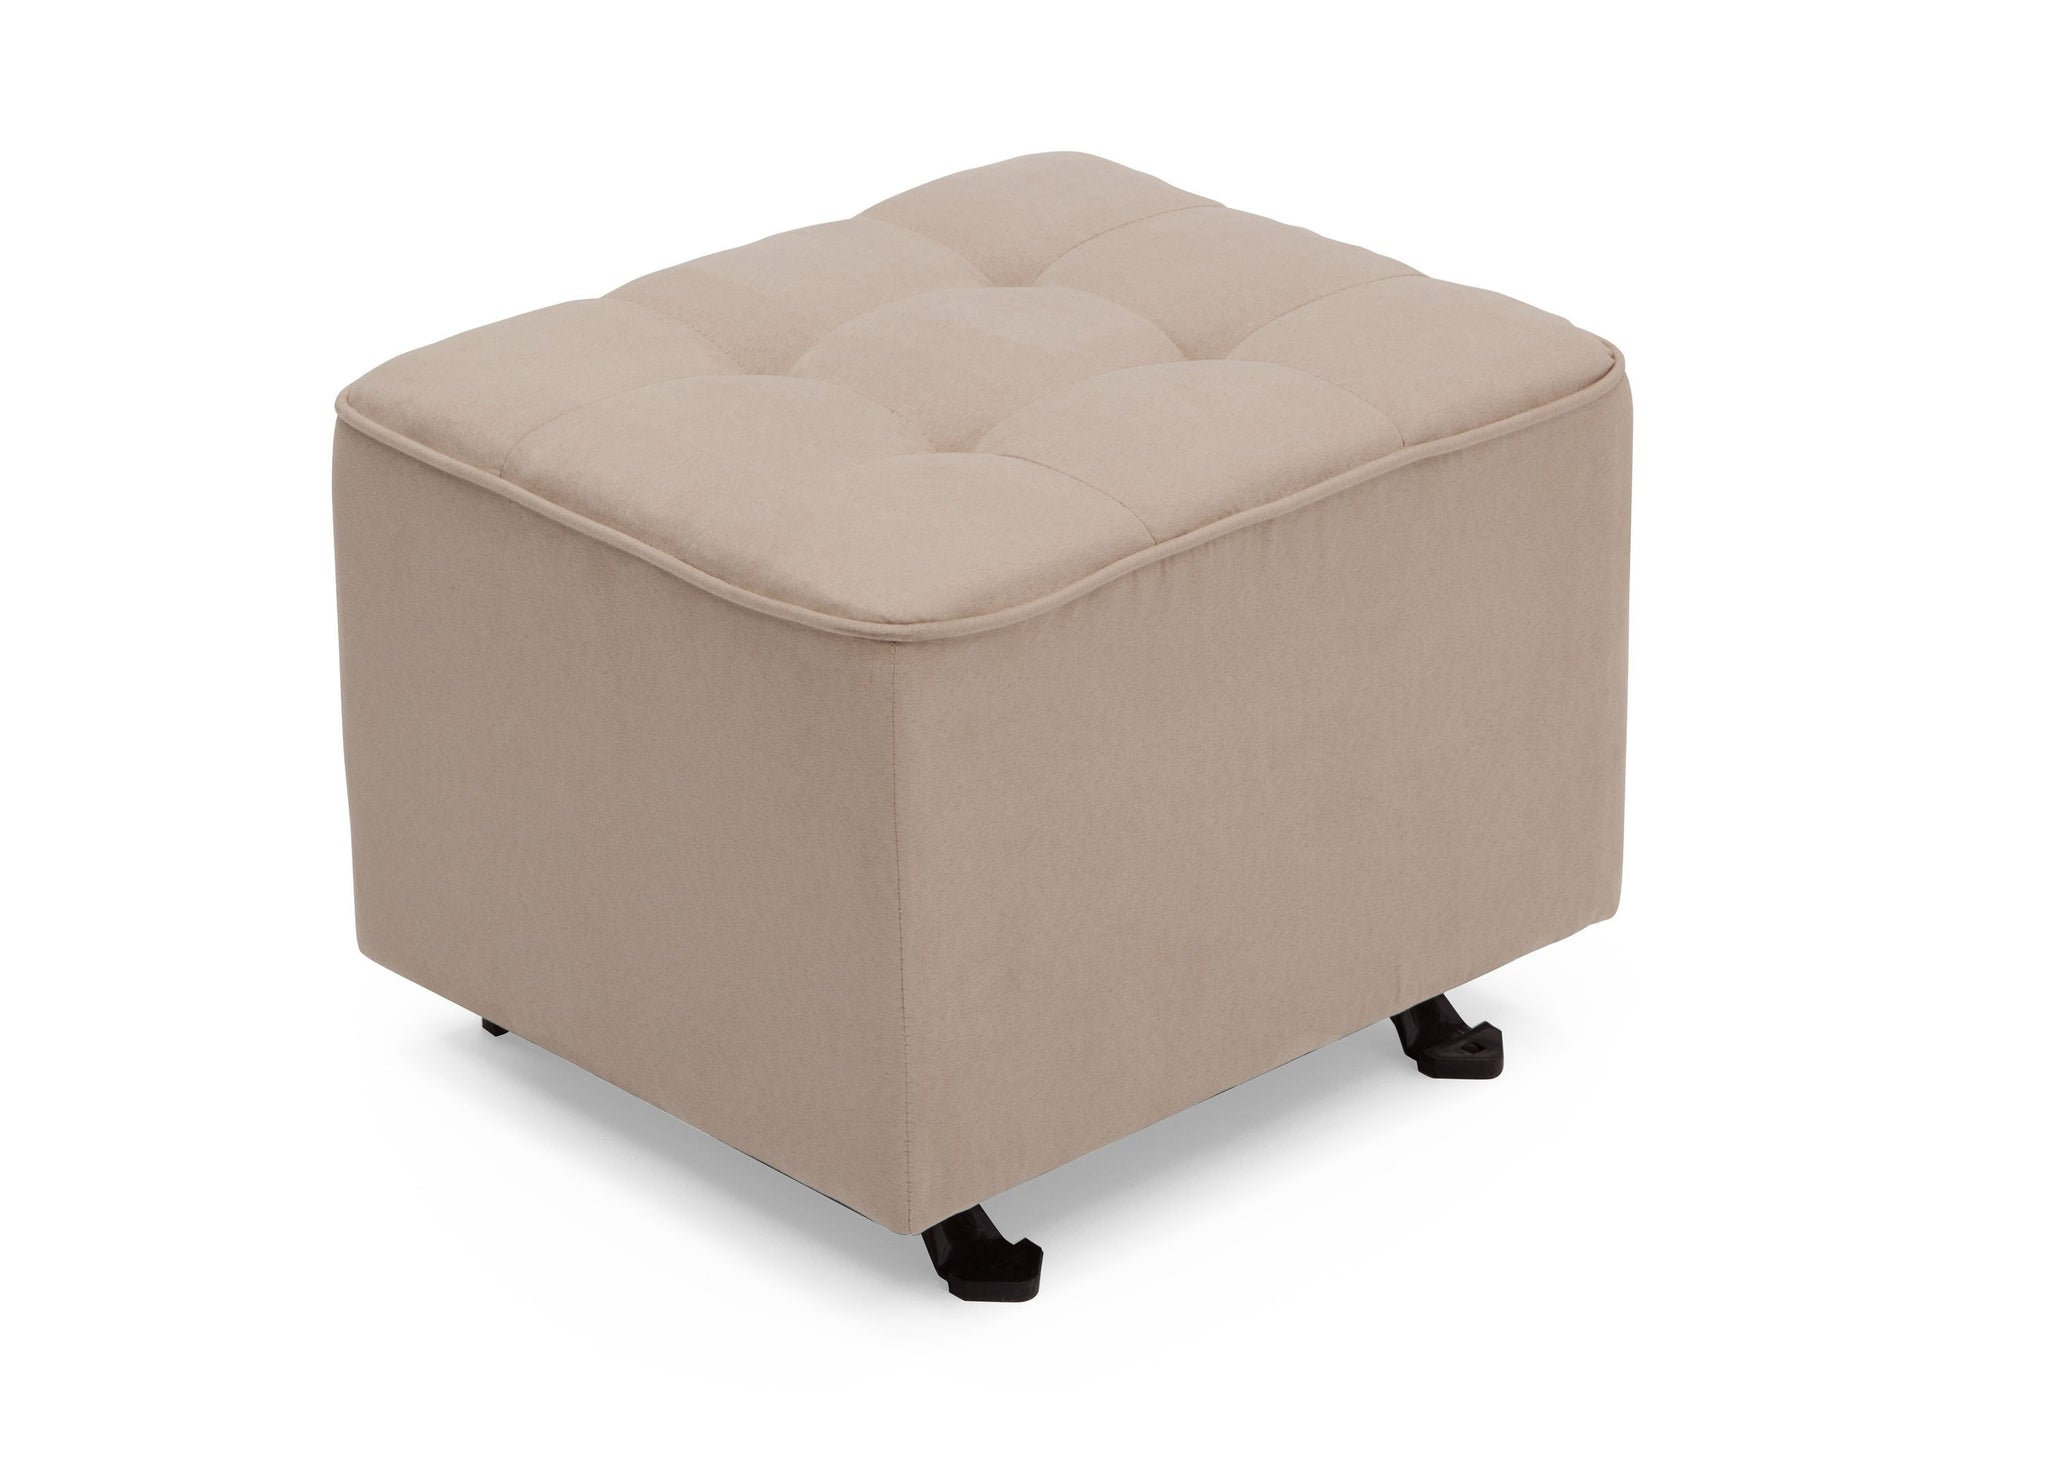 Delta Children Ecru (277) Tufted Nursery Gliding Ottoman, angled view, b3b